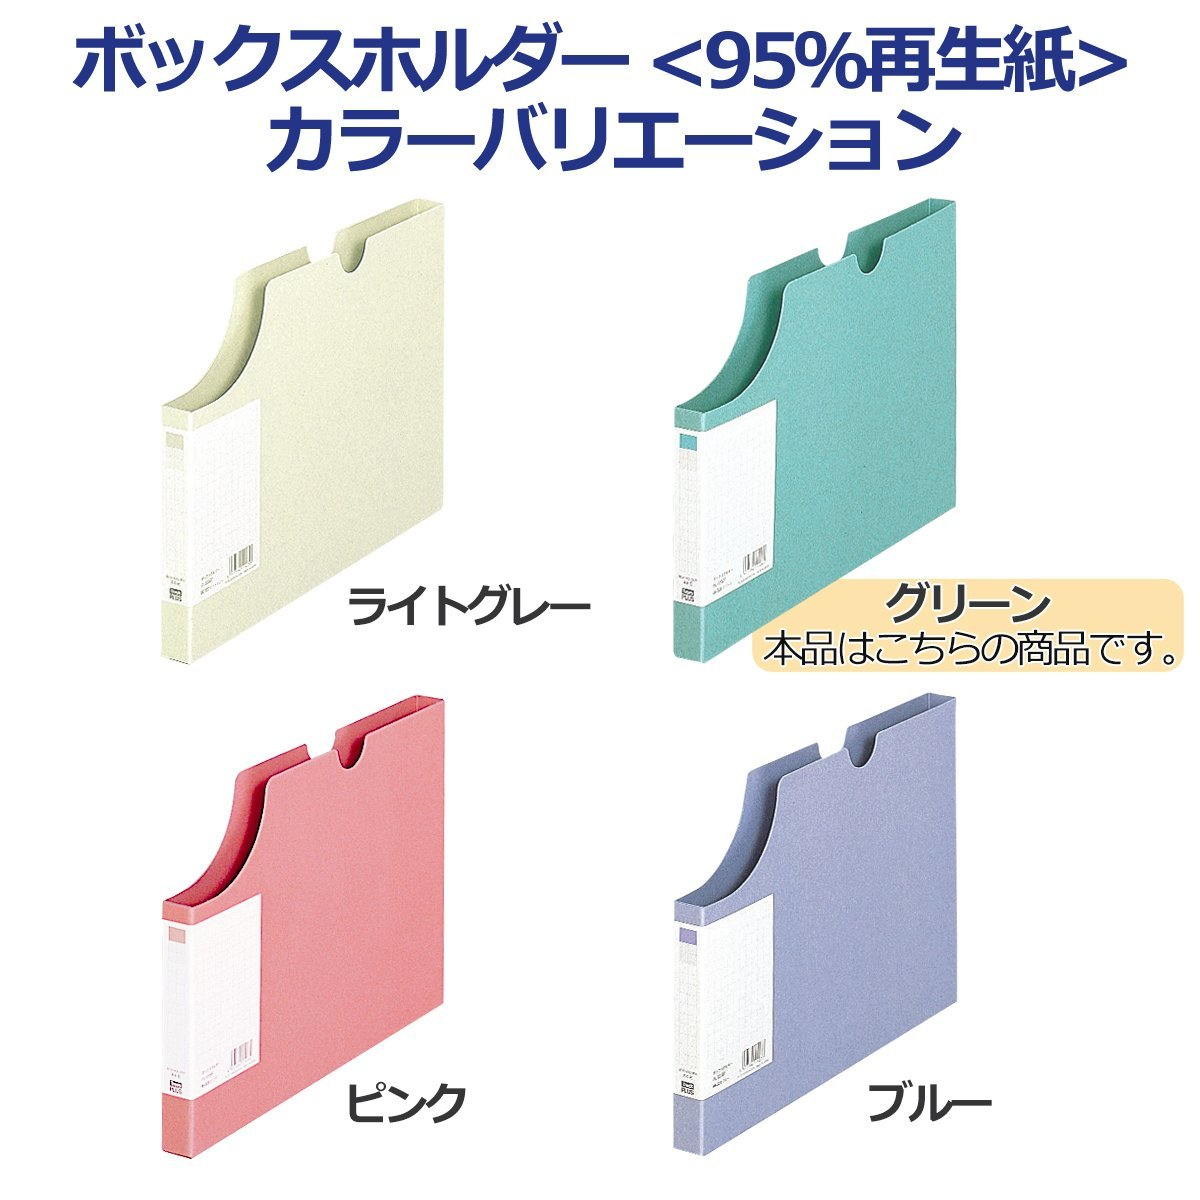 Amazon.com: Plus box holder 95% recycled paper A4-E FL-020BF Green 86-323 (japan import): Office Products